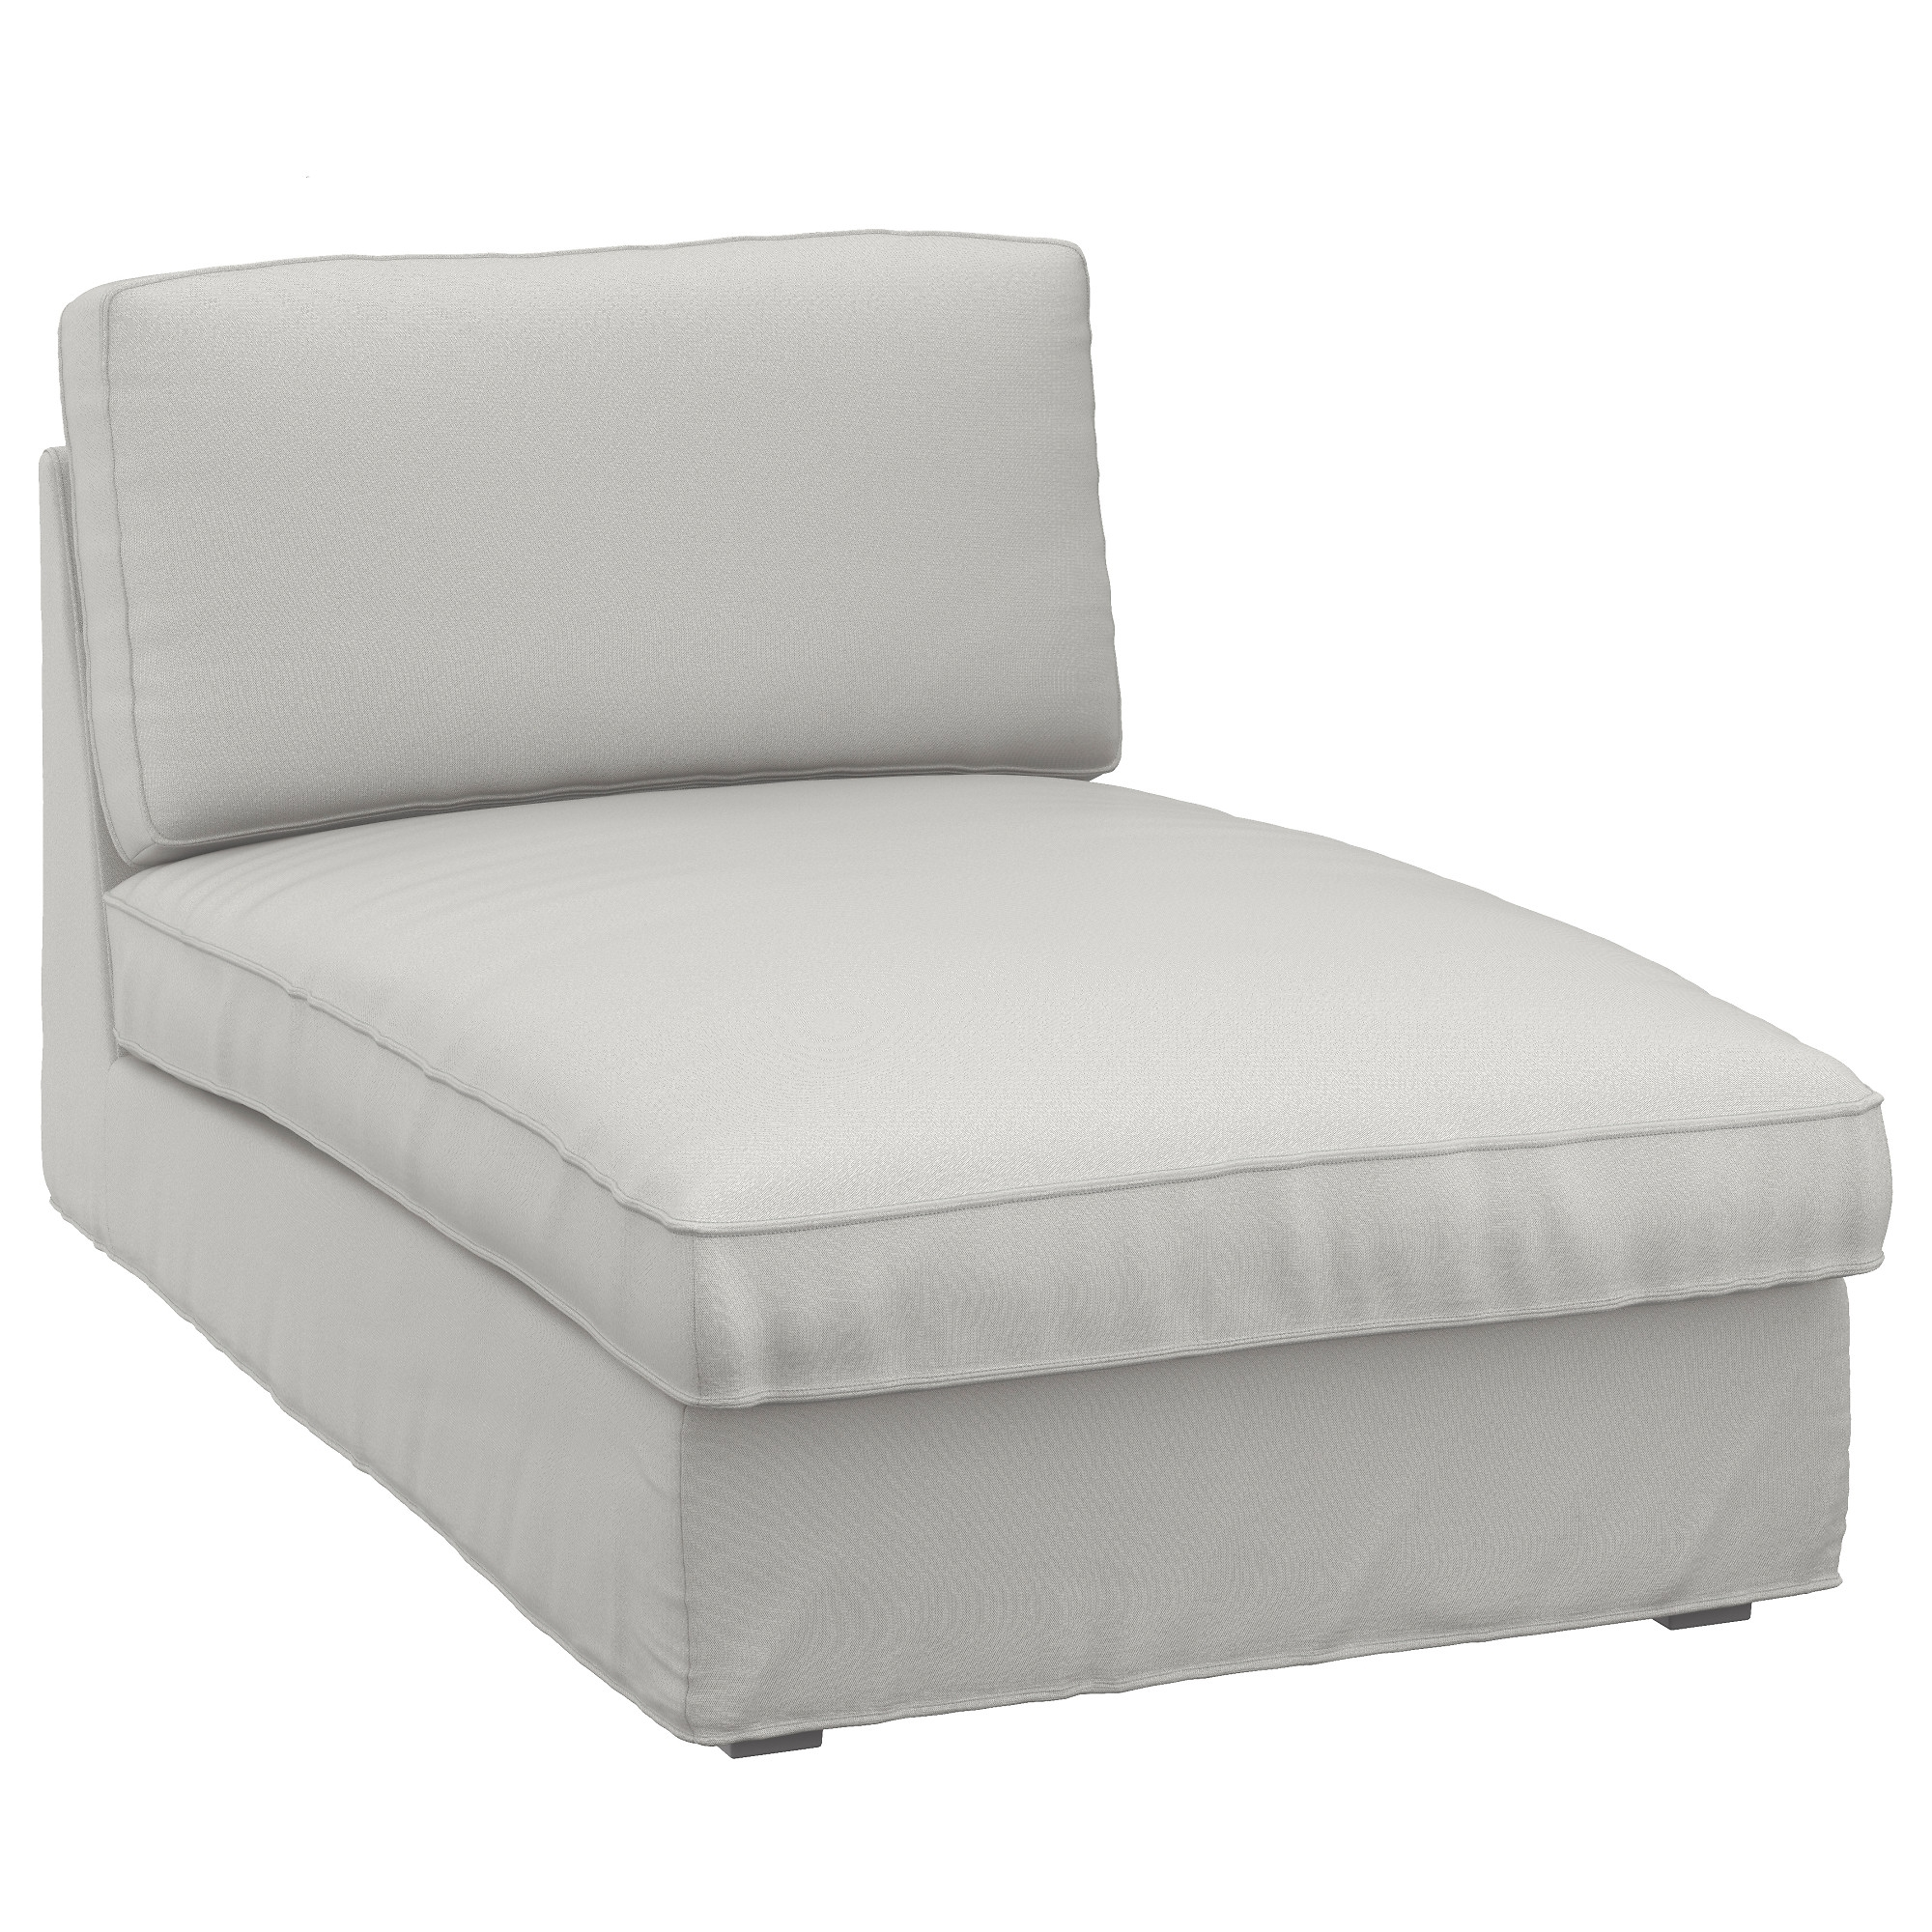 Ikea Intended For Latest Ikea Chaise Lounges (Gallery 3 of 15)